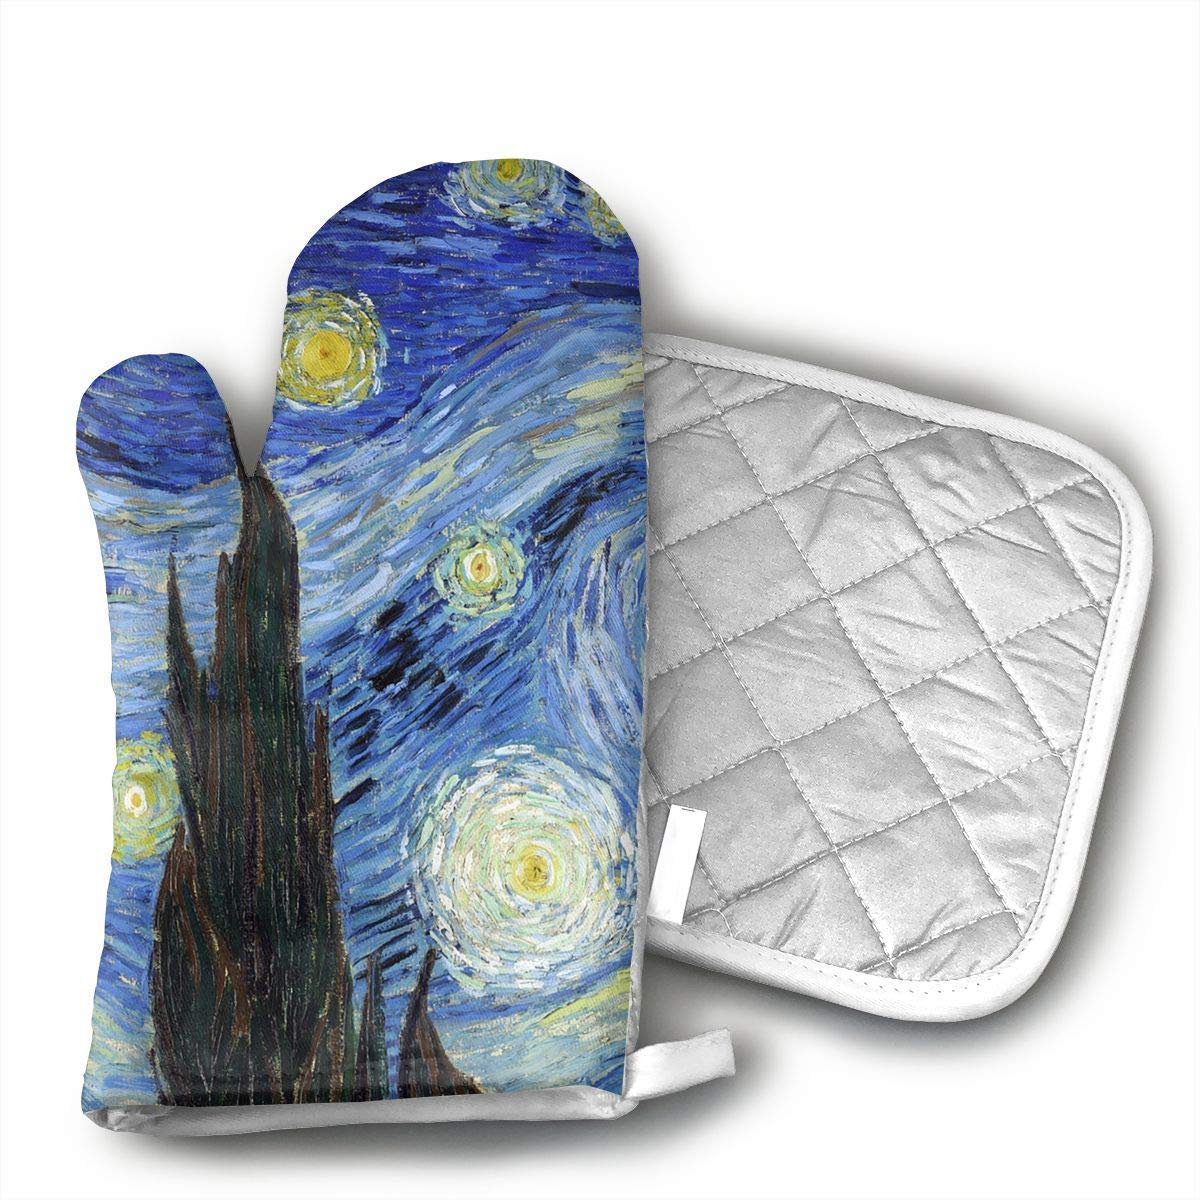 NoveltyGloves Van Gogh Starry Night Oven Mitts,Professional Heat Resistant Microwave BBQ Oven Insulation Thickening Cotton Gloves Baking Pot Mitts Soft Inner Lining Kitchen Cooking